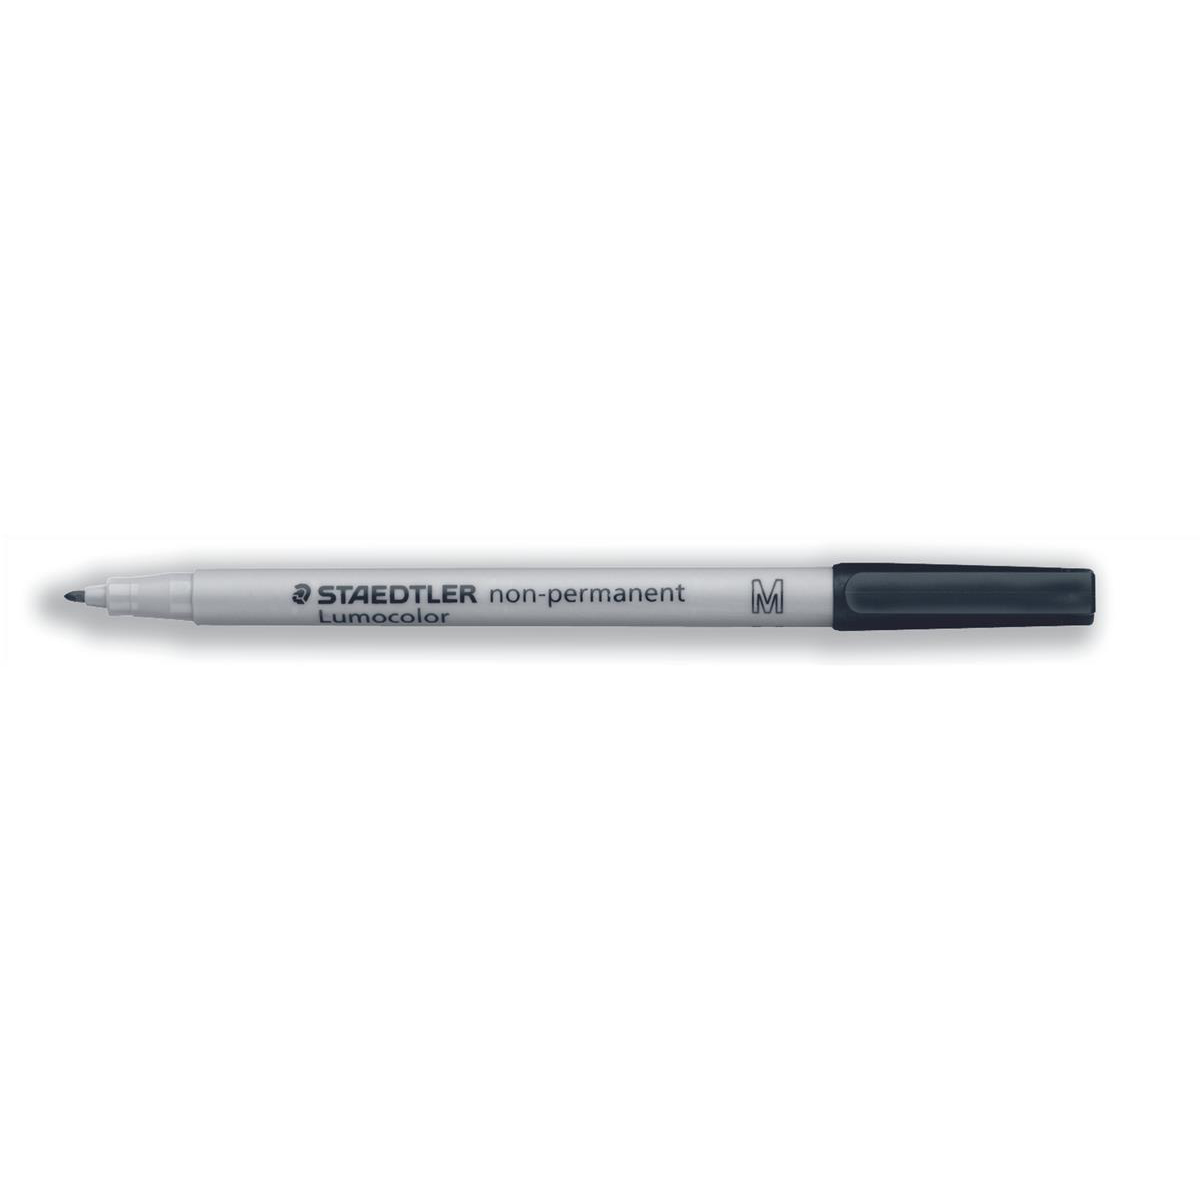 Staedtler 315 Lumocolor Pen Non-permanent Medium 1.0mm Line Black Ref 315-9 Pack 10